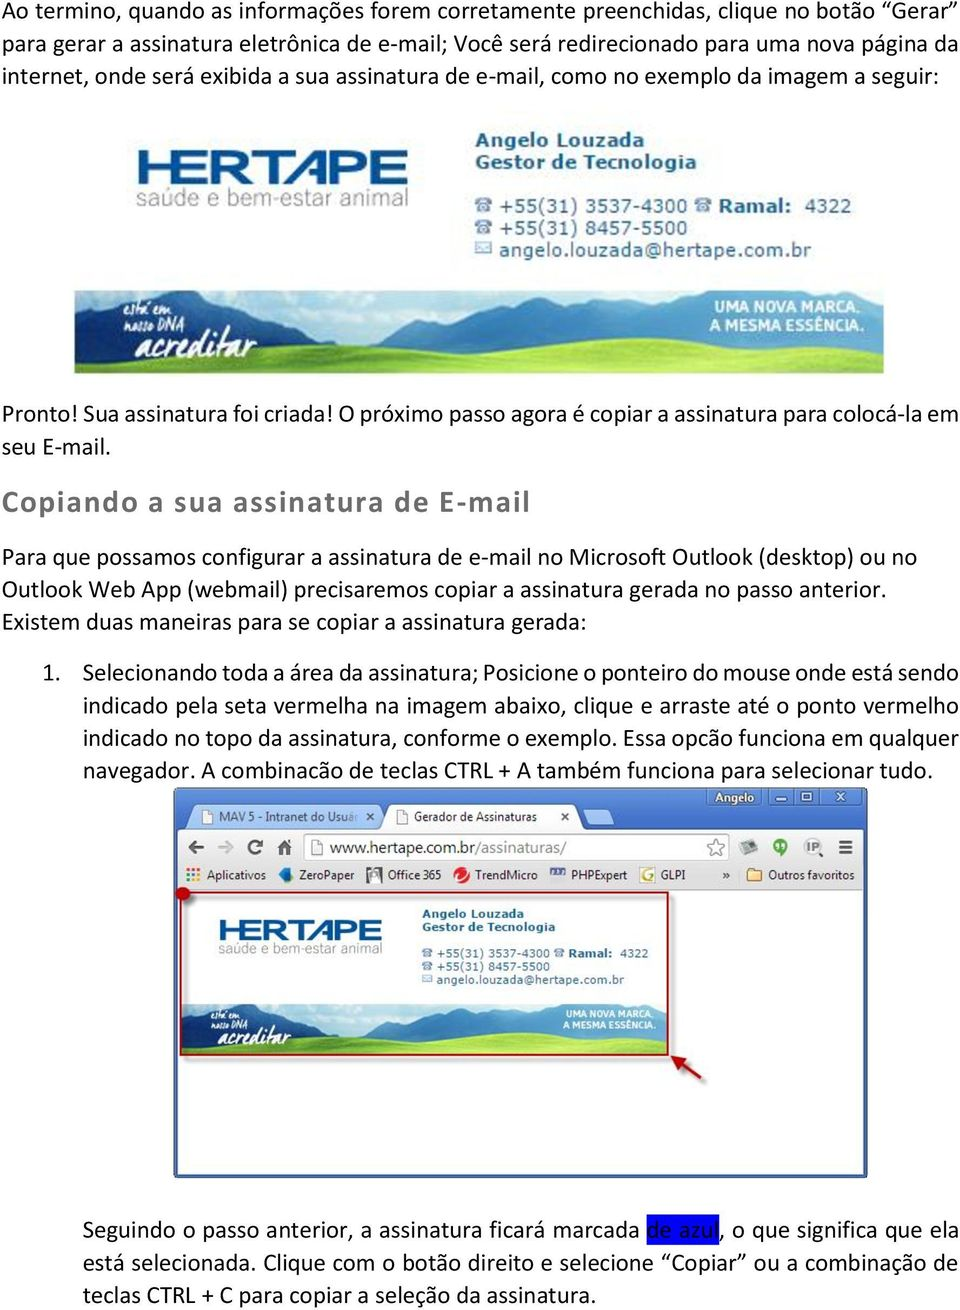 Copiando a sua assinatura de E-mail Para que possamos configurar a assinatura de e-mail no Microsoft Outlook (desktop) ou no Outlook Web App (webmail) precisaremos copiar a assinatura gerada no passo